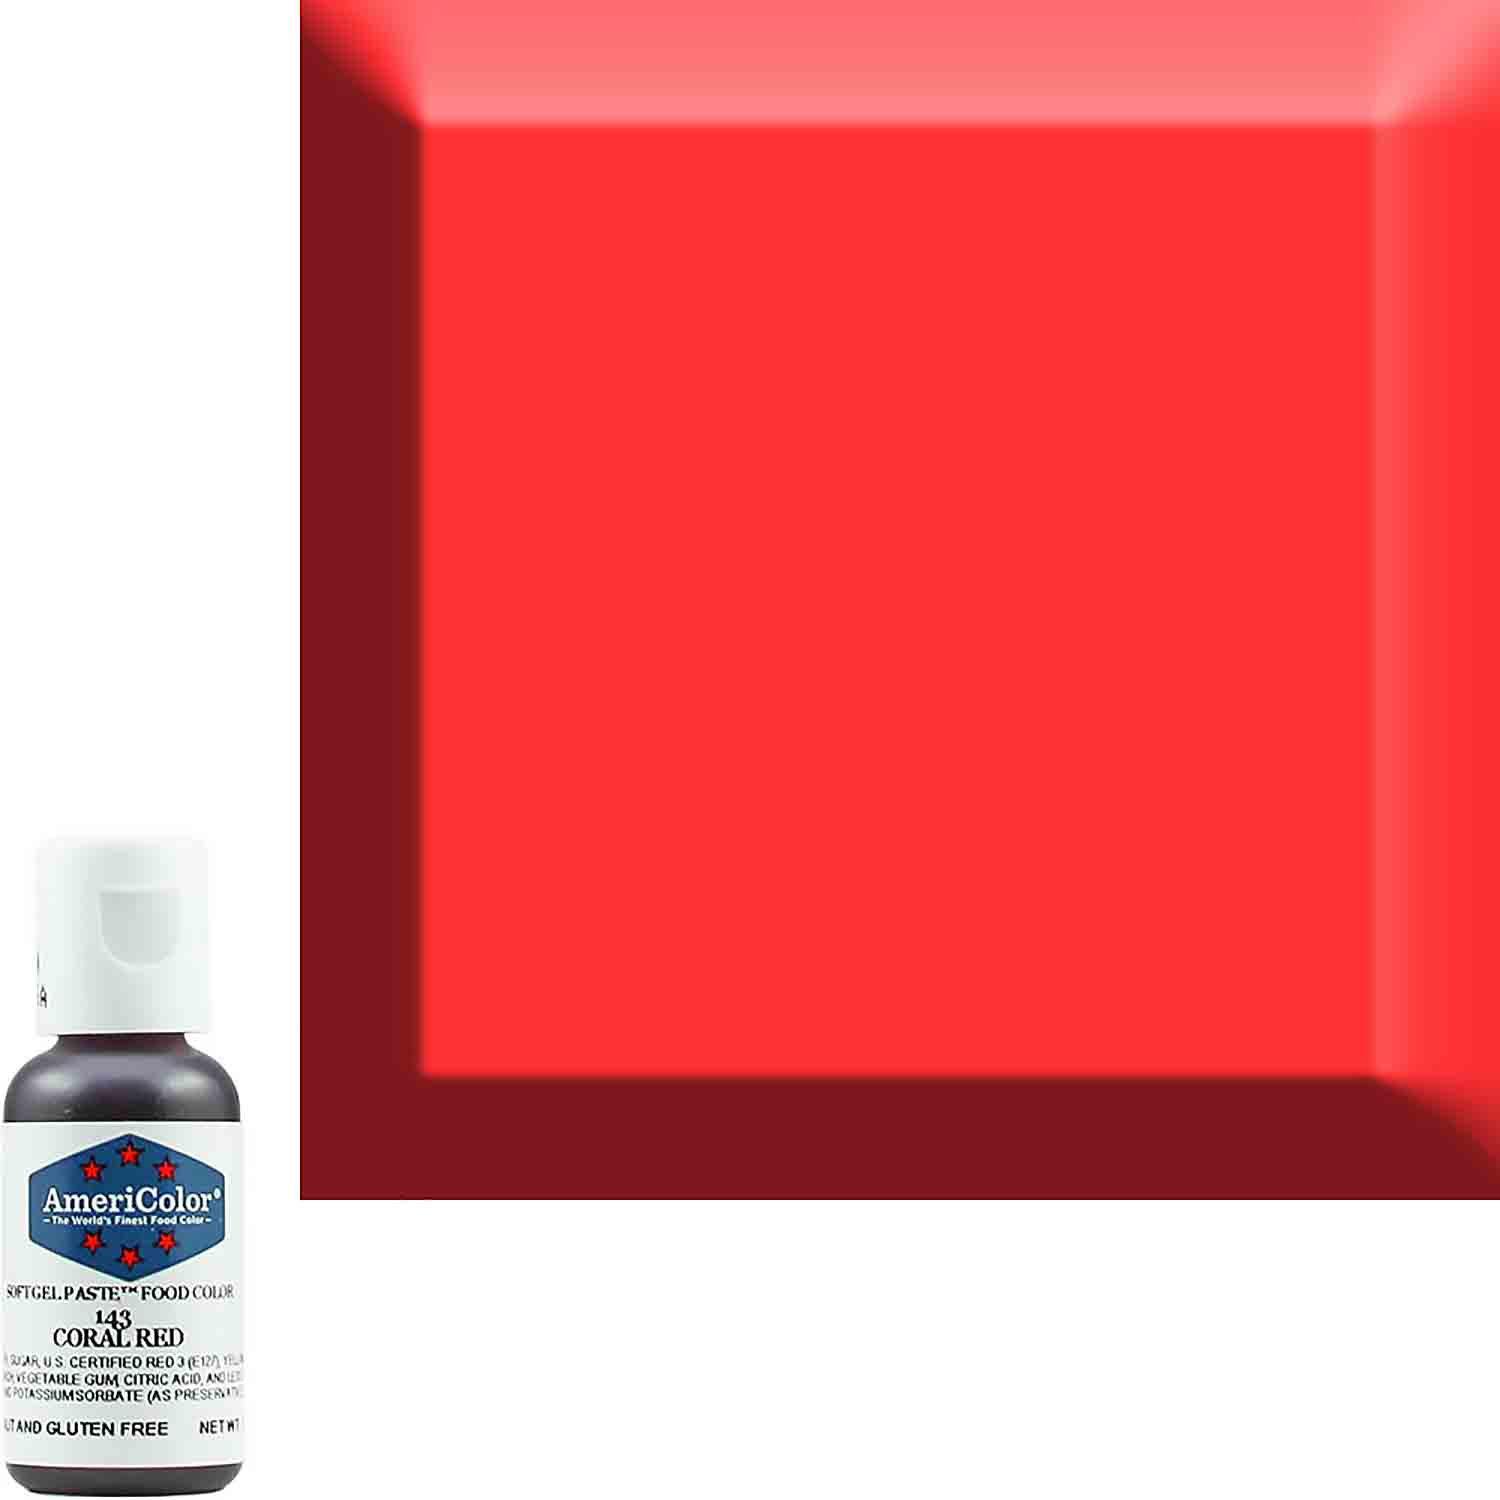 Coral Red AmeriColor® Soft Gel Paste™ Food Color